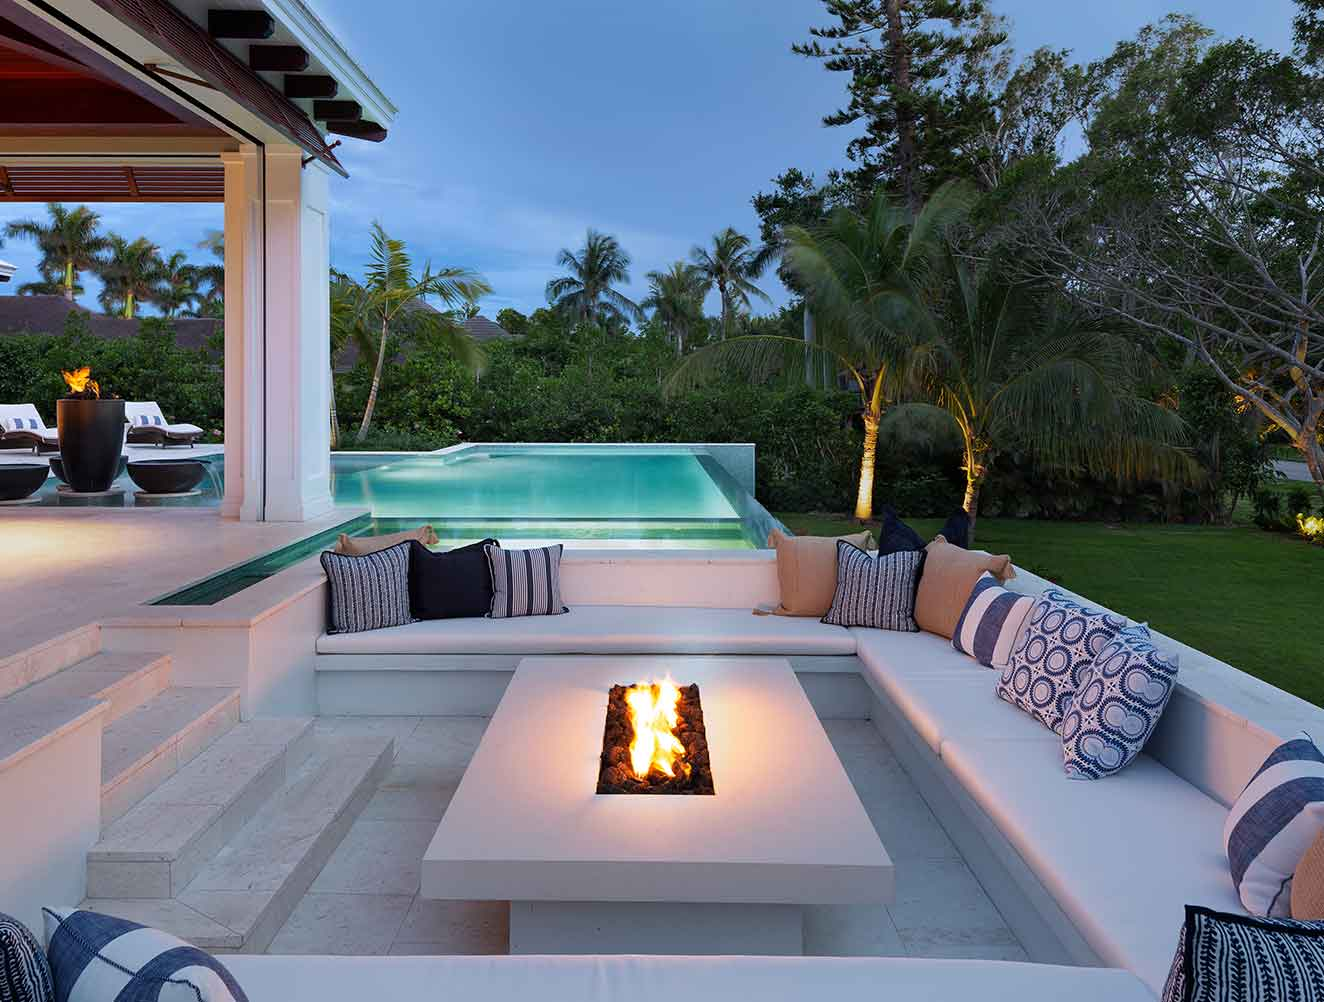 Portfolio of Leisure Spaces in Naples, Florida Luxury Homes. Leisure Outdoor fire pit with built-in seating. Designed by Kukk Architecture & Design Naples.